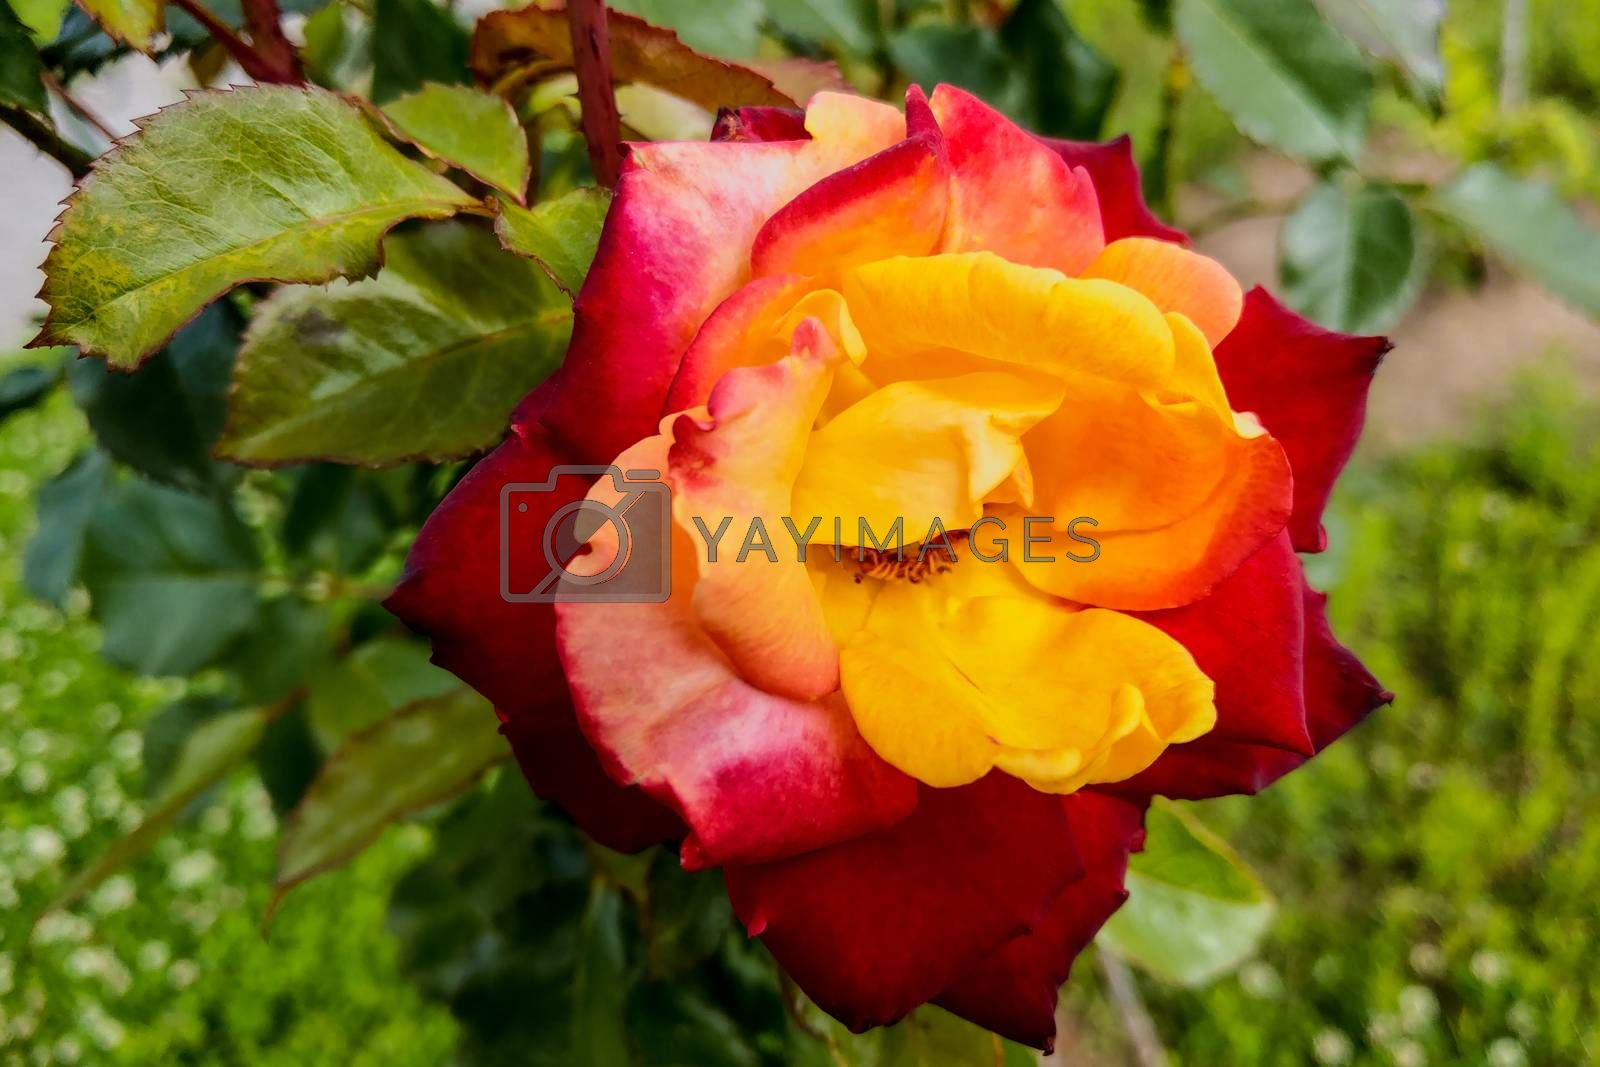 Macro, shallow depth of field image of a single red and yellow rose